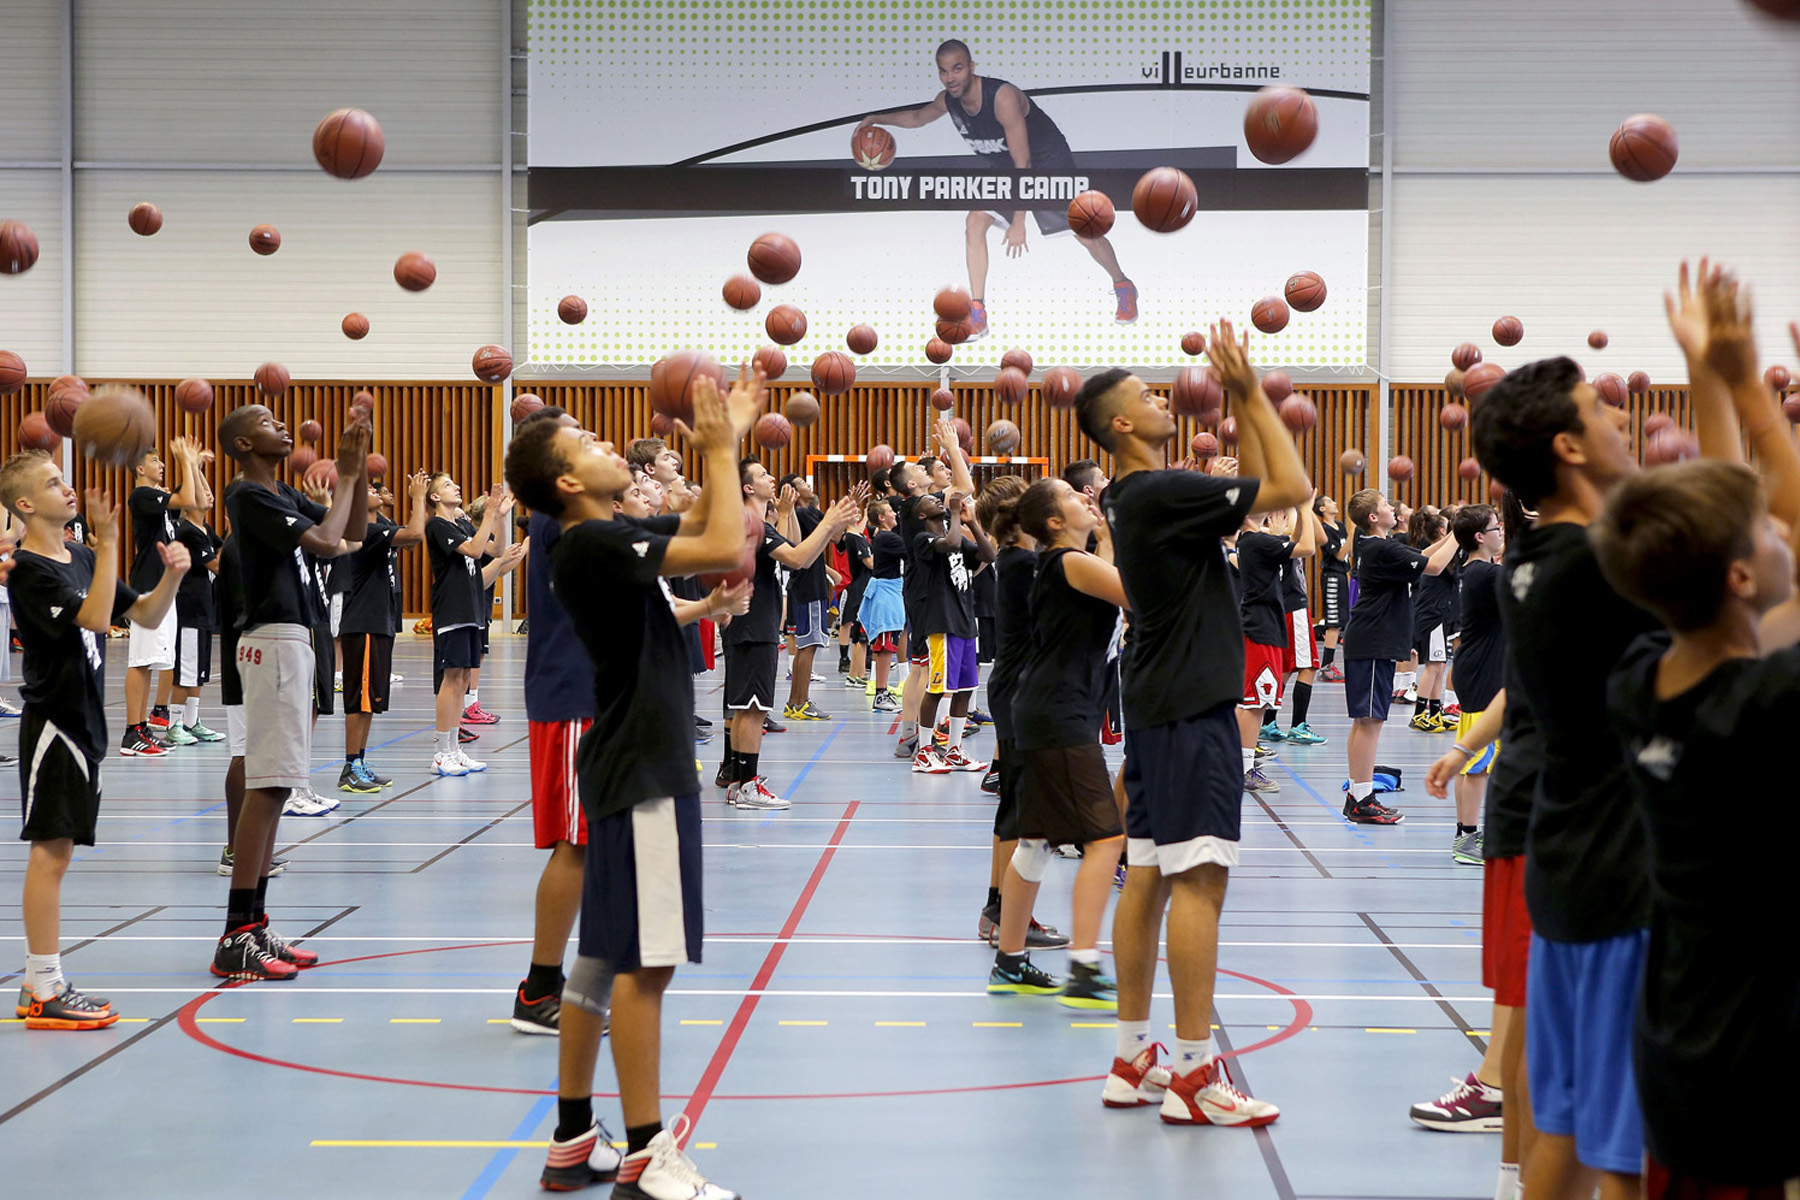 A training session at the 'Tony Parker Camp', a teen summer basketball camp  in Villeurbanne, France, on July 21, 2014.